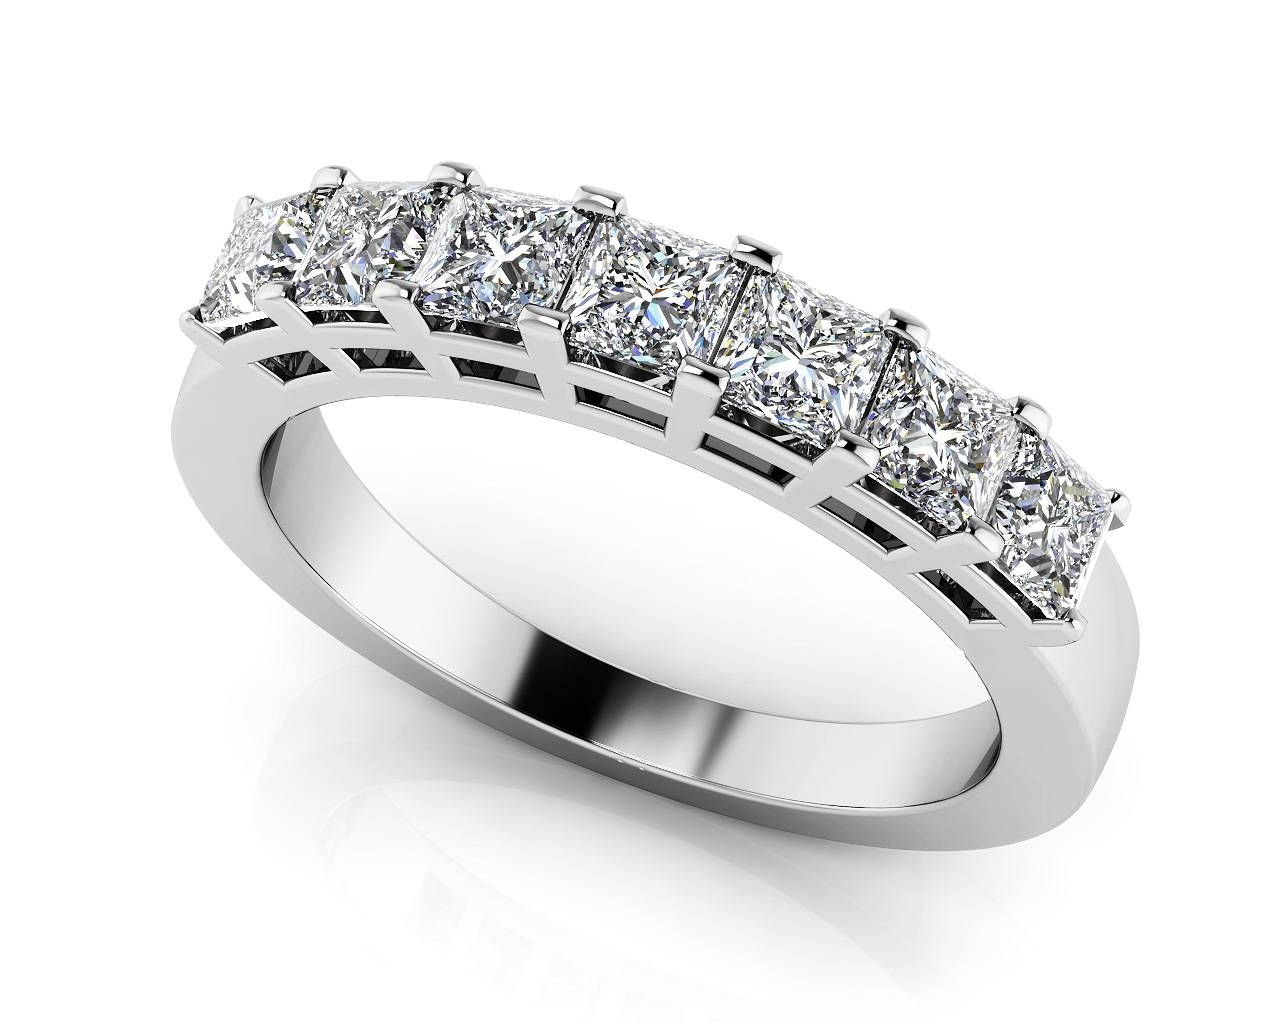 Design Your Own Diamond Anniversary Ring & Eternity Ring In Newest Anniversary Rings (View 10 of 25)